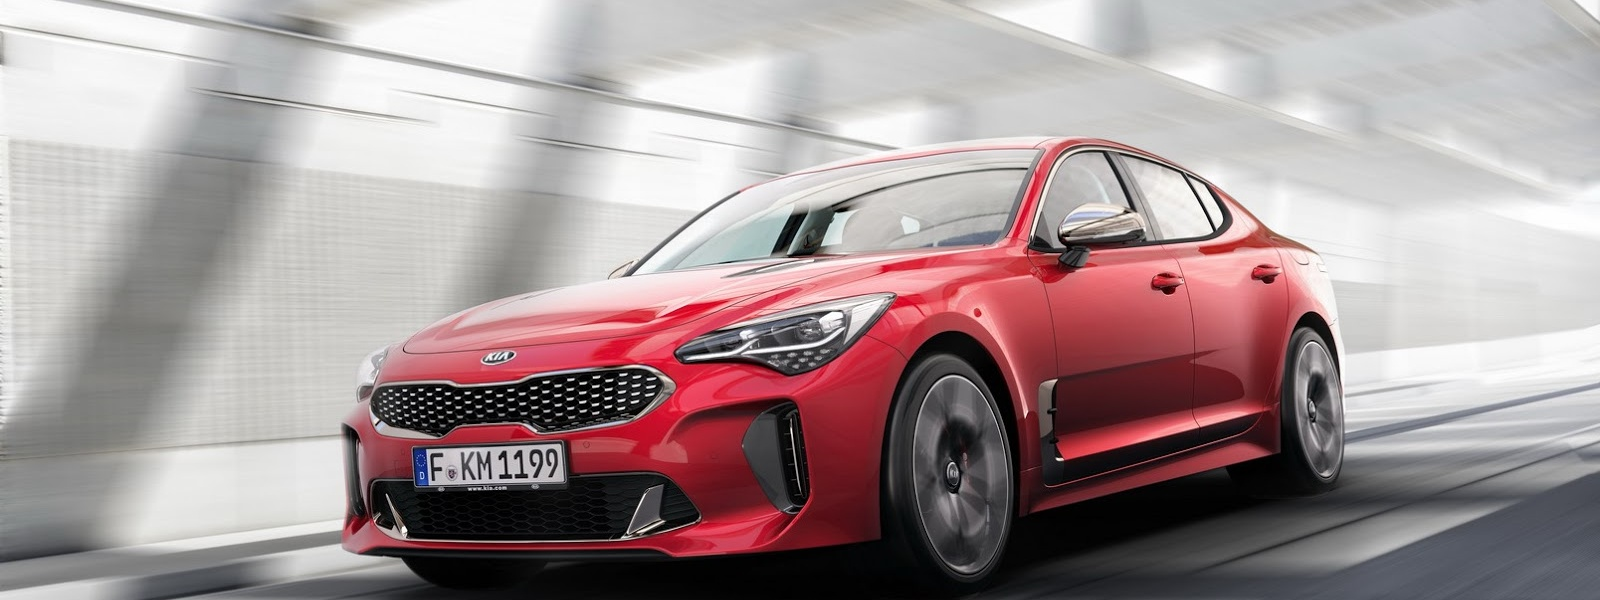 Kia Stinger won't get Kia badge in Korea -5.jpg